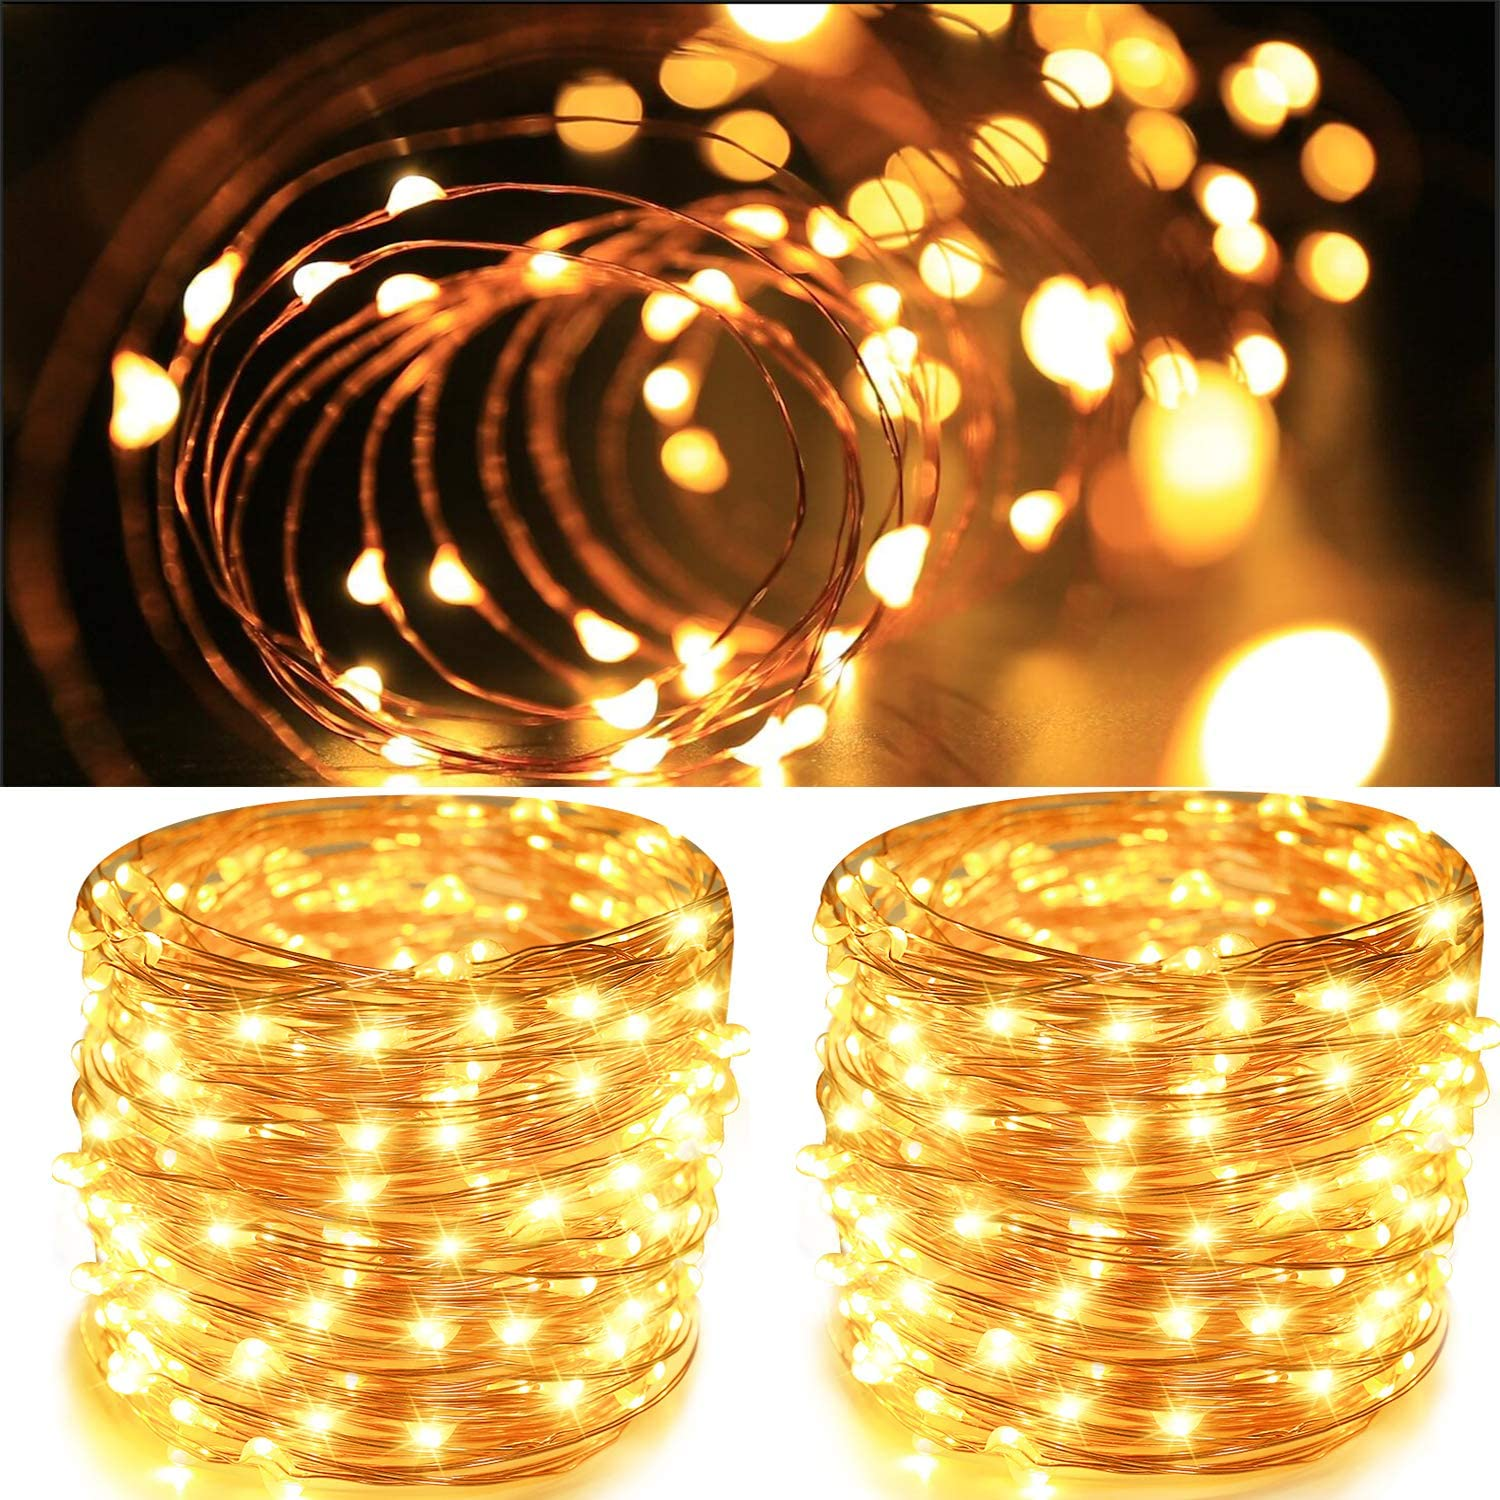 Aluan Fairy Lights 2 Pack 100 LED 33 FT Copper Wire Christmas Lights USB & Battery Powered Waterproof LED String Lights with 8 Modes for Indoor Outdoor Bedroom Wedding Party Patio Decor, Warm White